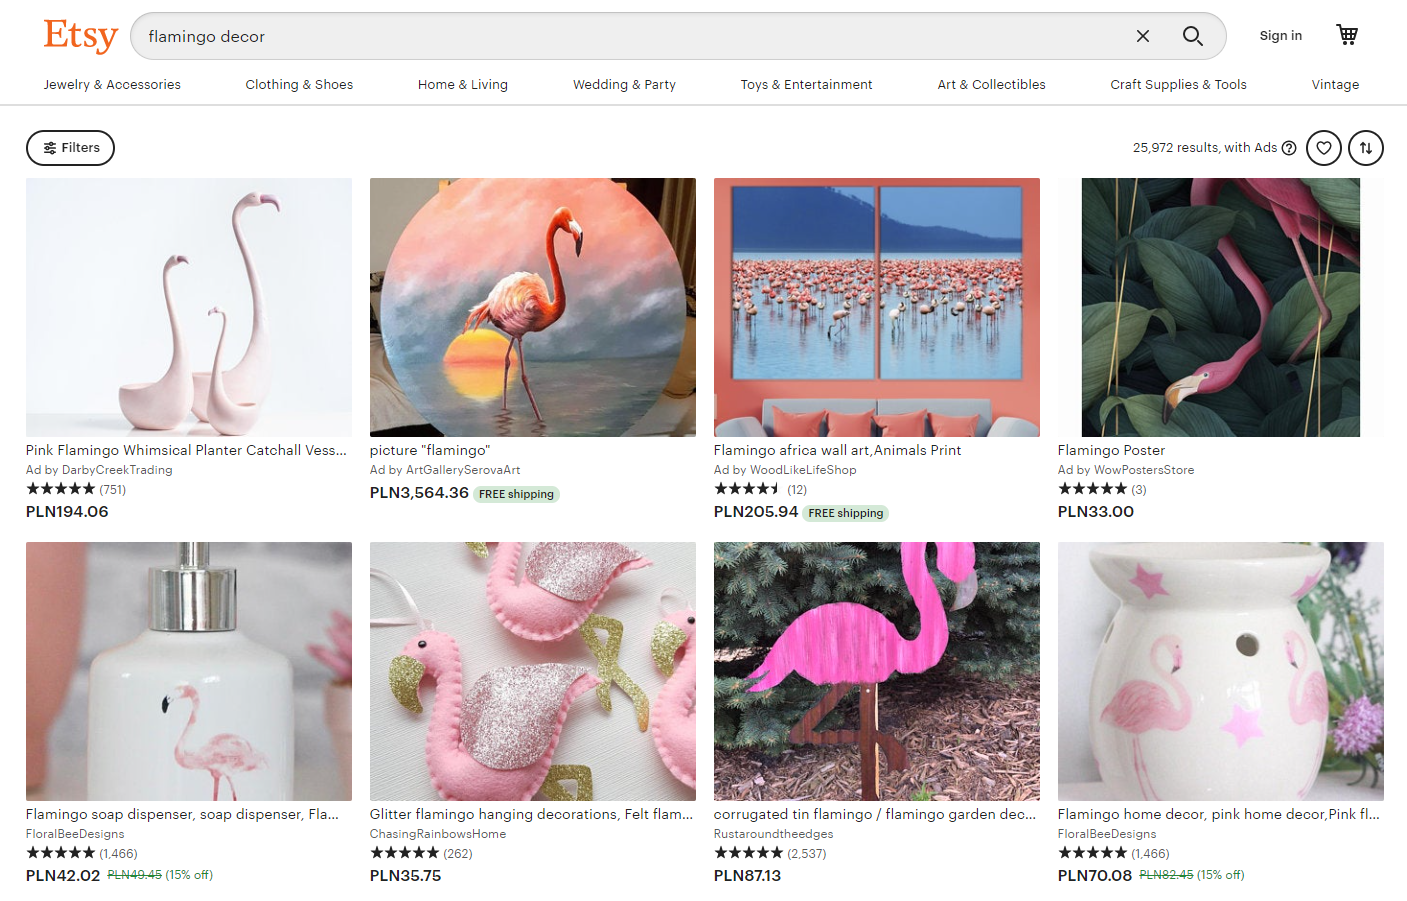 When you research Etsy keywords, you may learn that different words preform better.